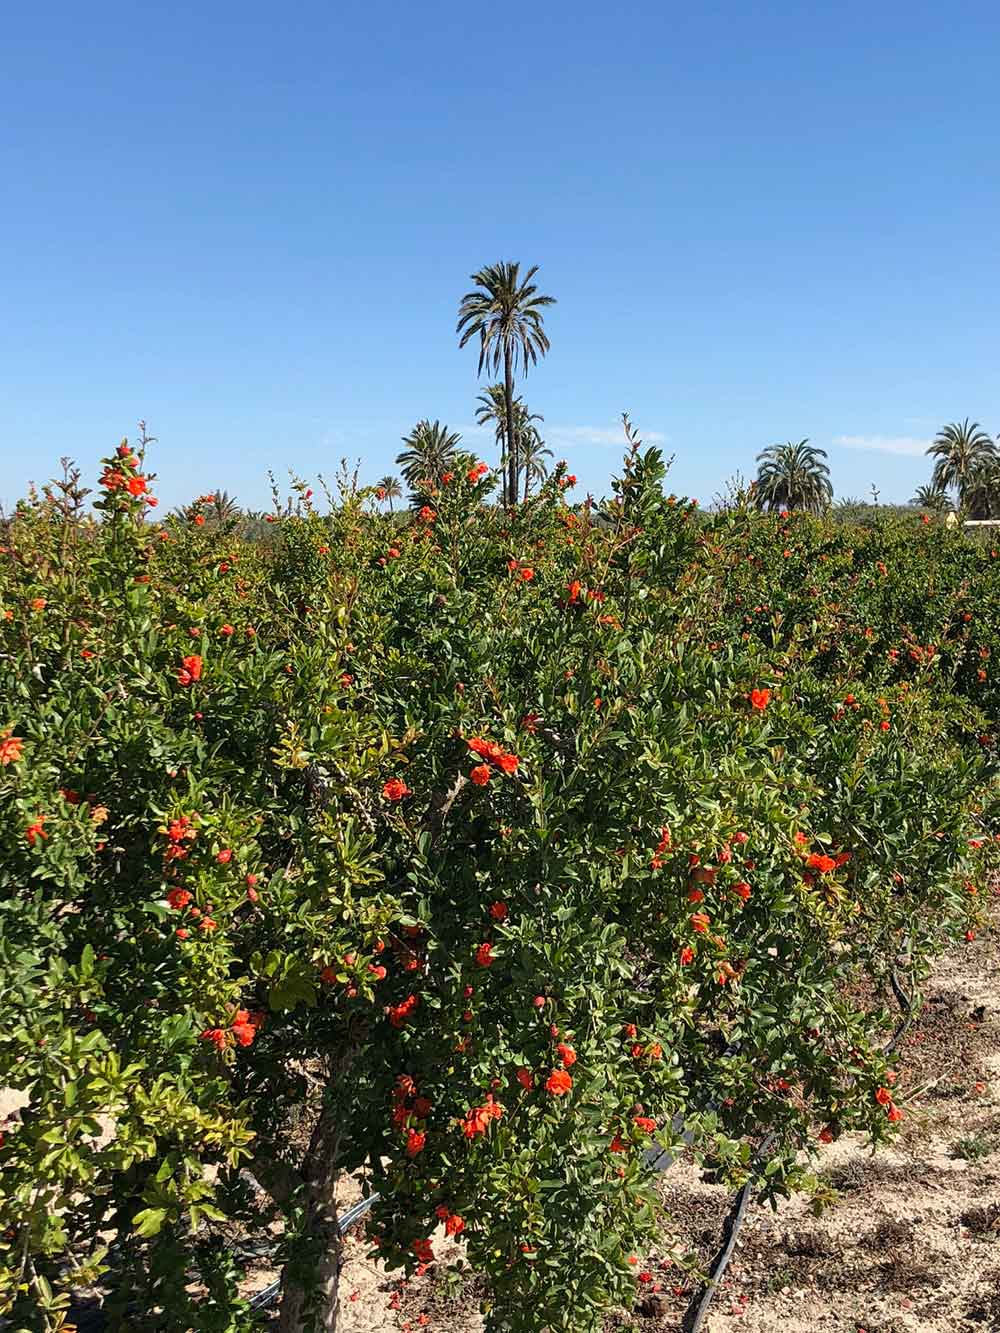 We dropped Staffie Maxie off for a short stay at Amber Lodge Kennels near Alicante. The area is well known for its nature park, and for its pomegranate orchards which are in full bloom just now.